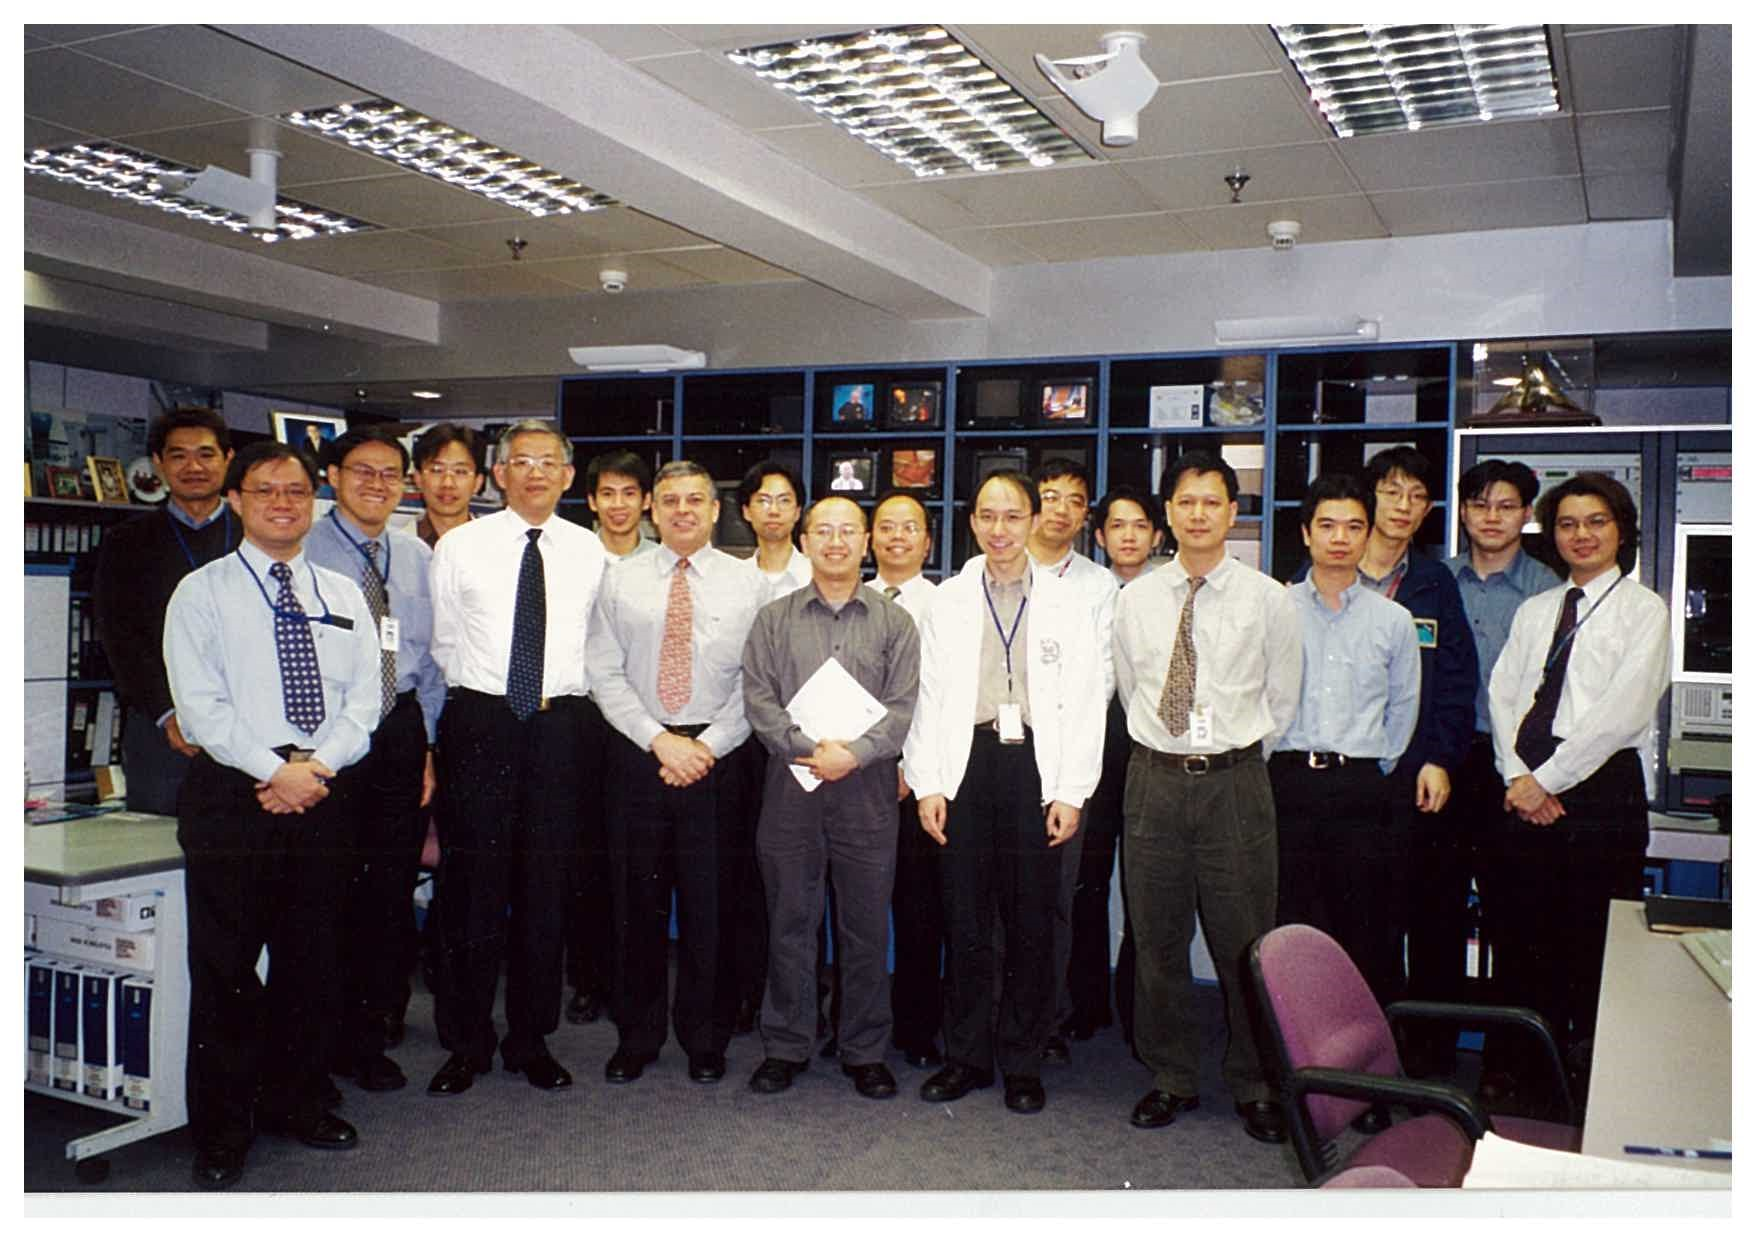 William (front row, third from right) pictured with the AsiaSat Operations Team on the day of deorbiting AsiaSat 1 in 2003 after its 13 years of service to Asia